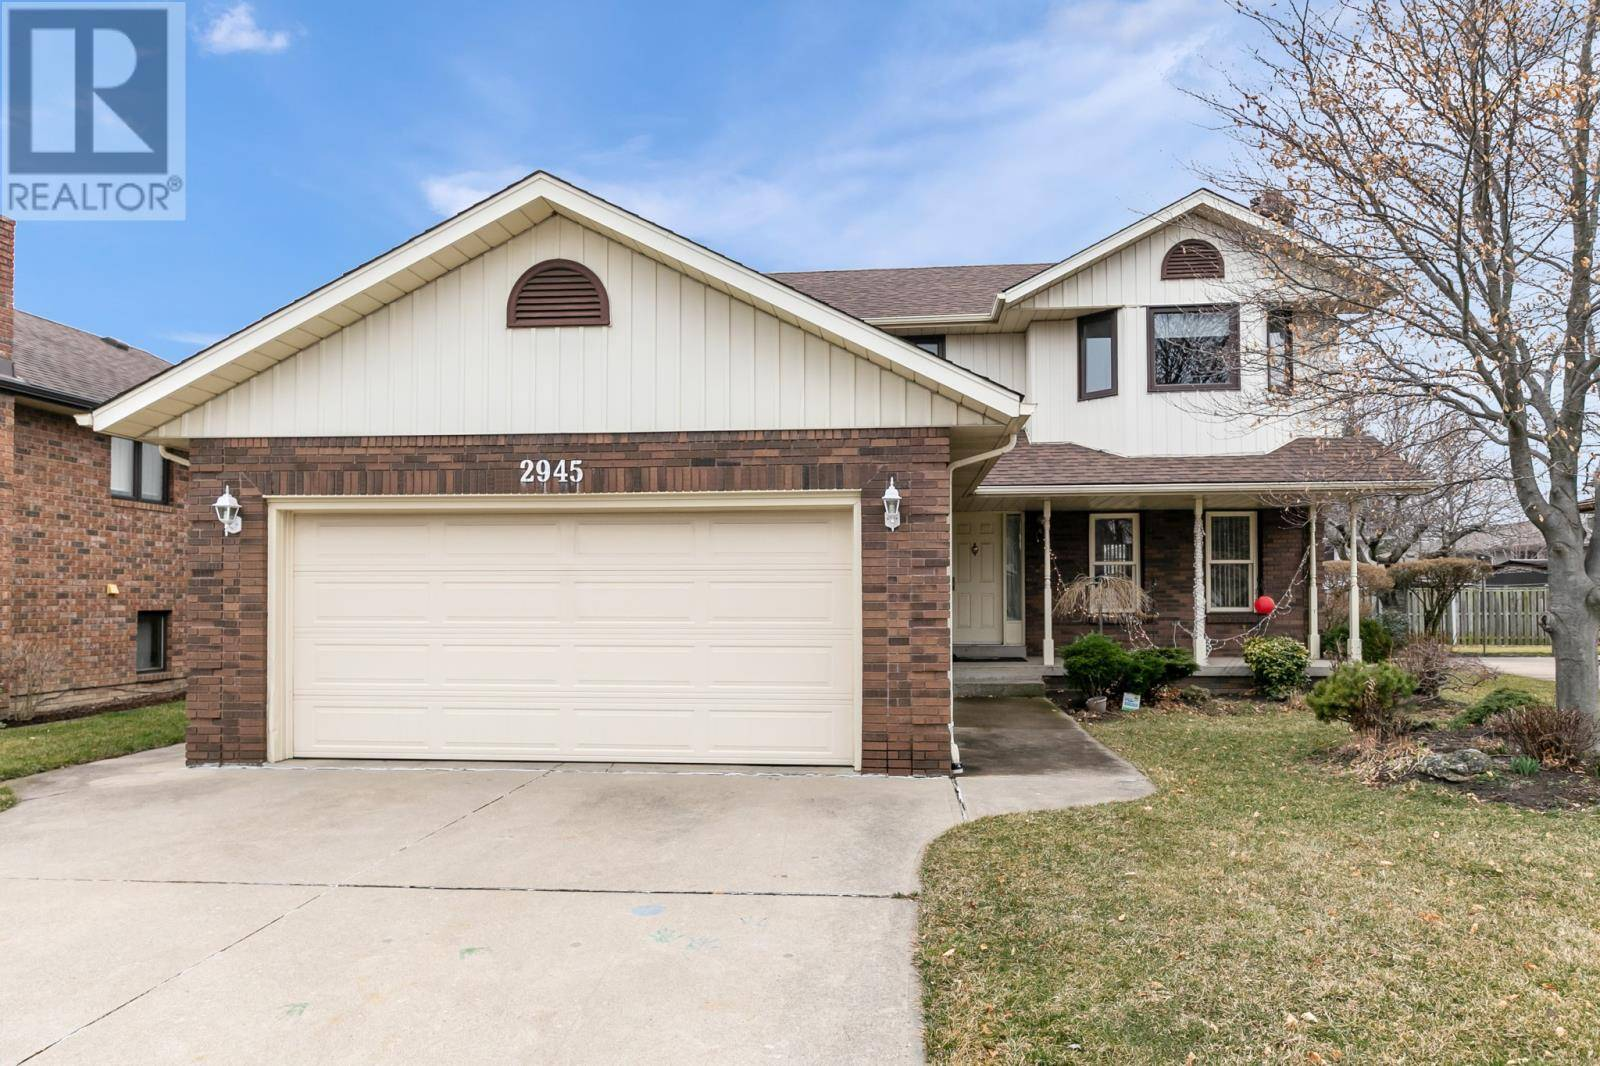 House for sale at 2945 California  Windsor Ontario - MLS: 20003752